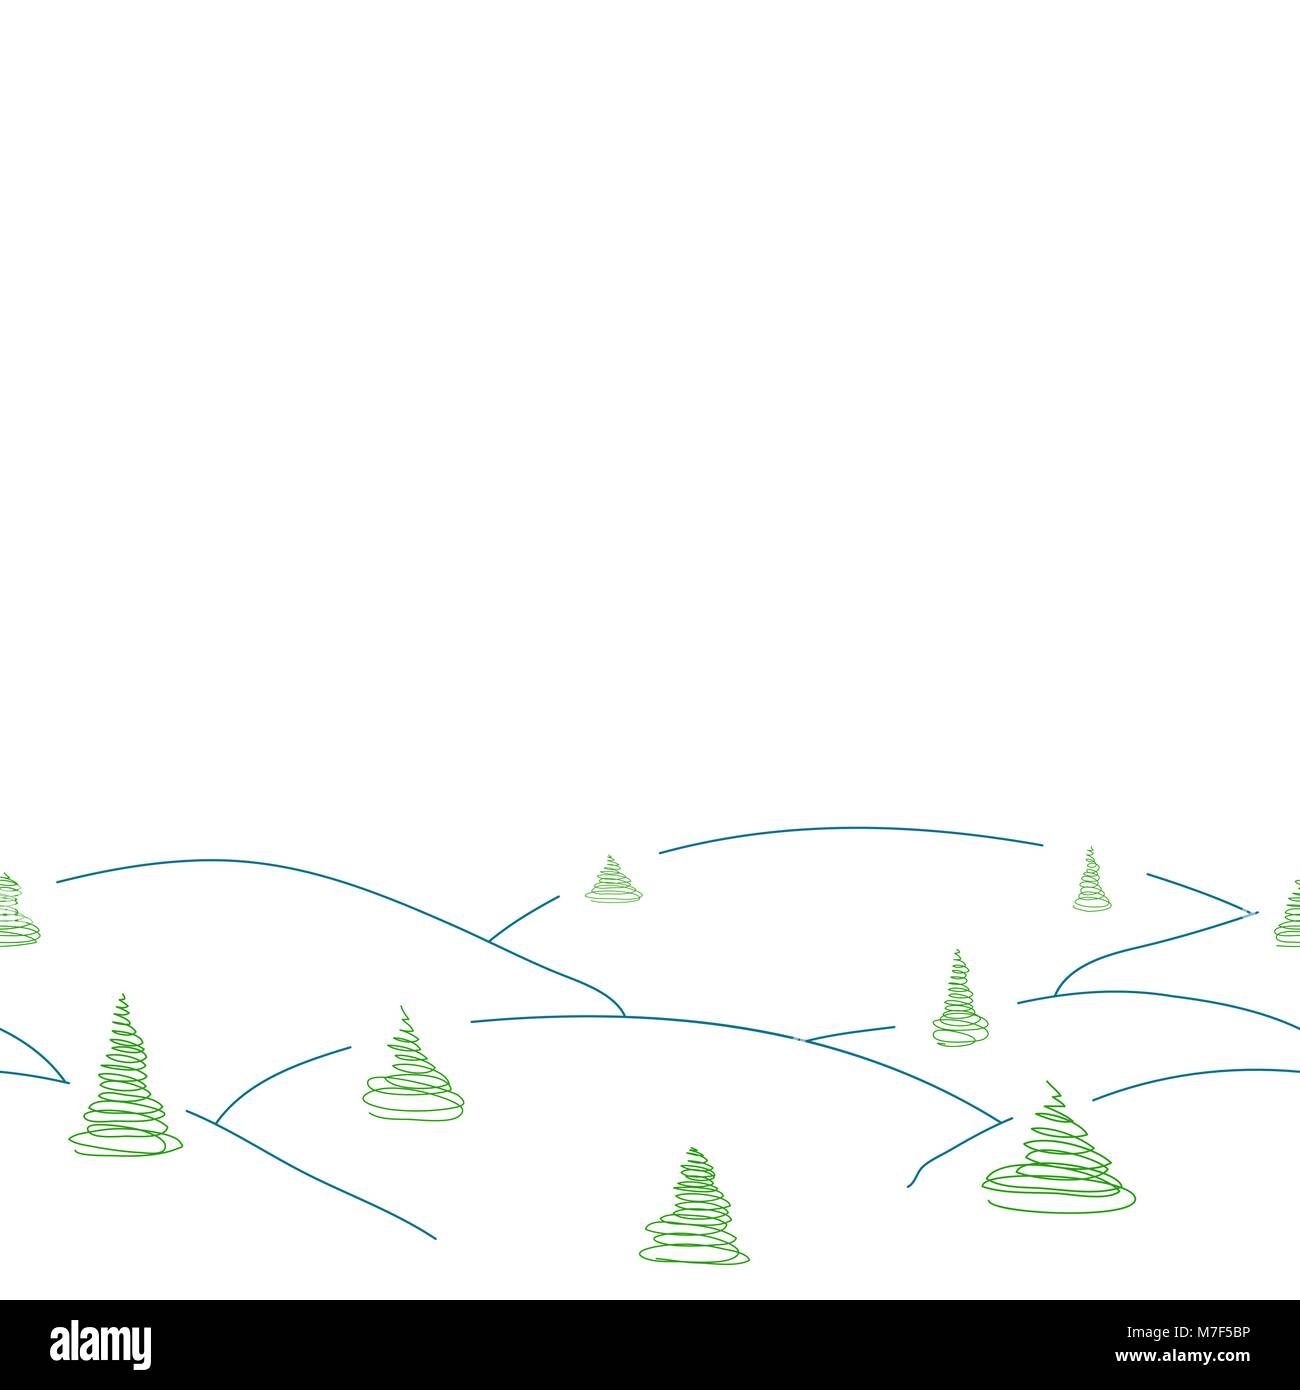 Vector seamless decorative winter border from simple snowdrift and sketch pine trees, fir trees, spruces - Stock Vector